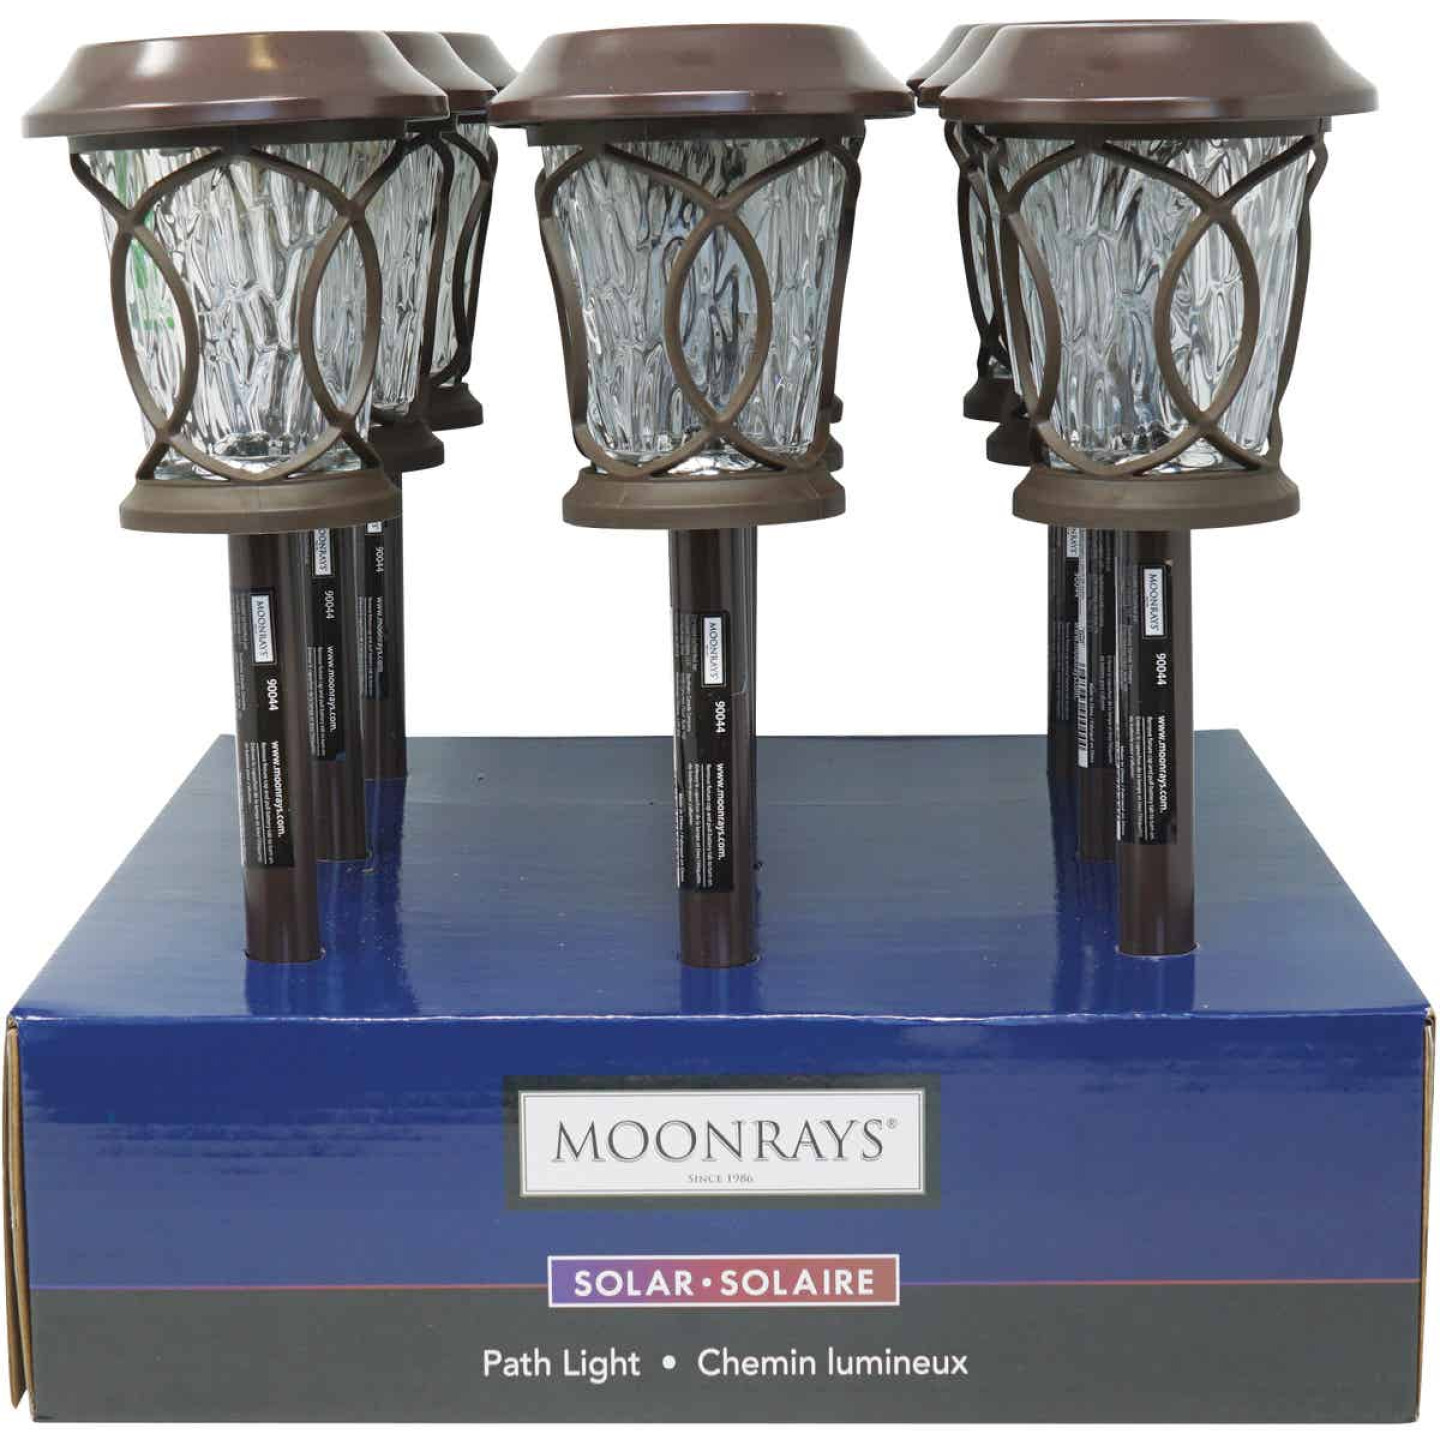 Moonrays Bronze 3 Lumens Plastic Solar Path Light Image 4